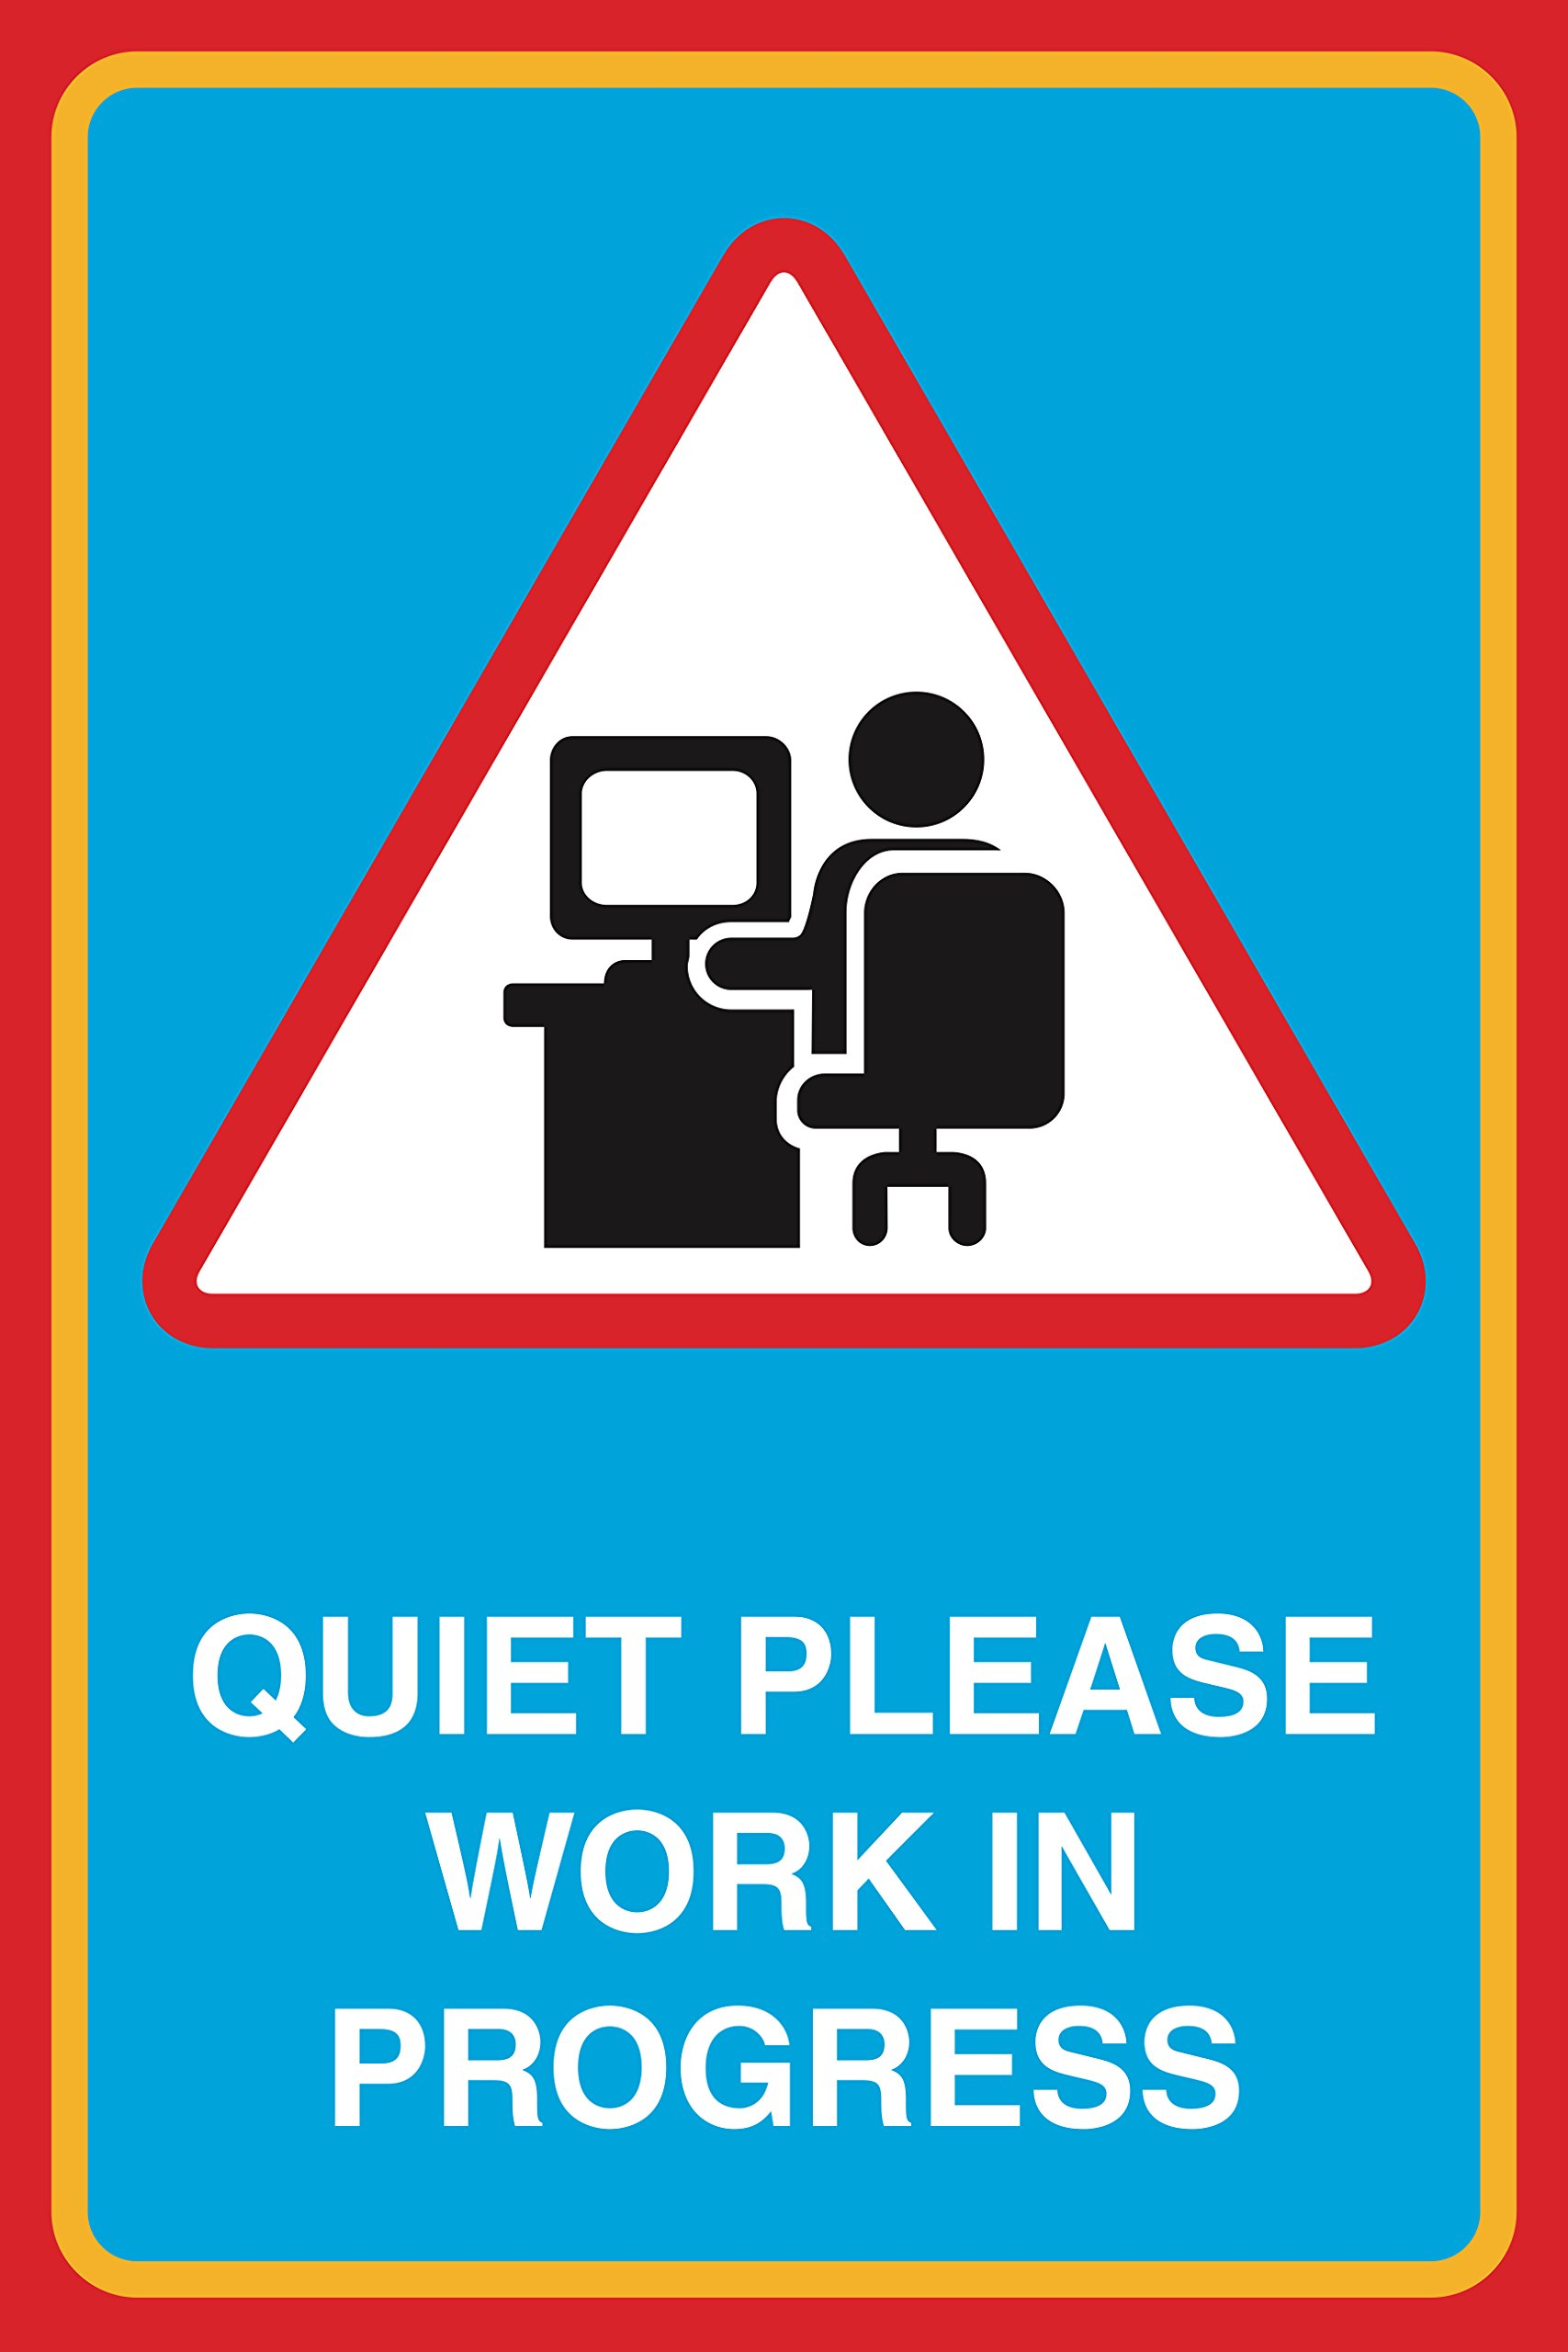 Quiet Please Work In Progress Print Picture Large Notice School Office Business Sign - Single Sign, 12x18